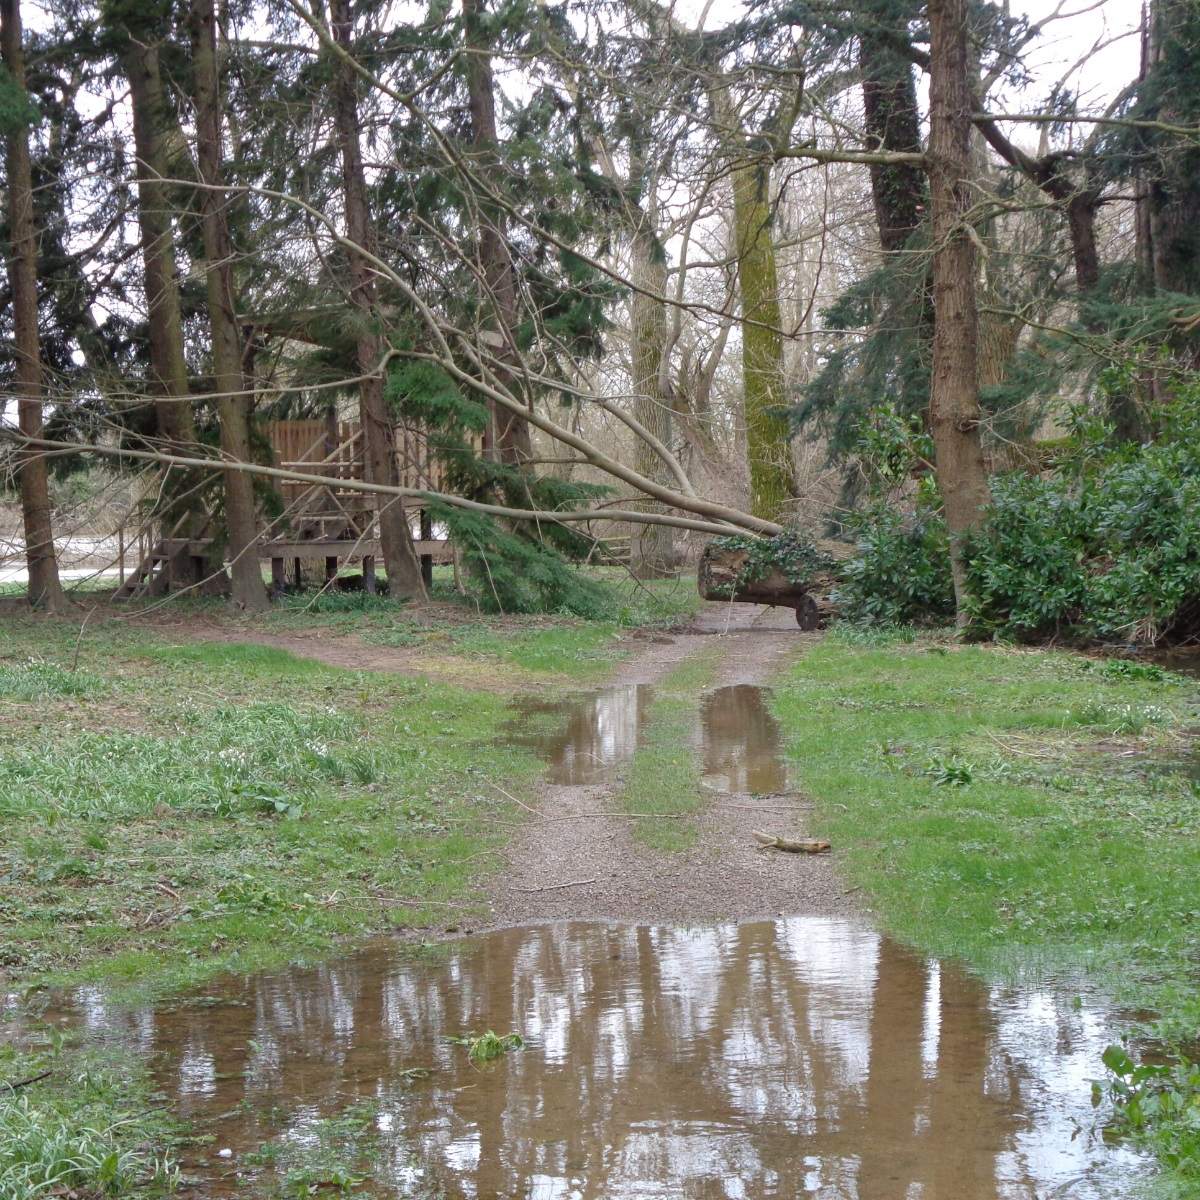 The Weir Garden flooding and trees that have fallen down in the storms